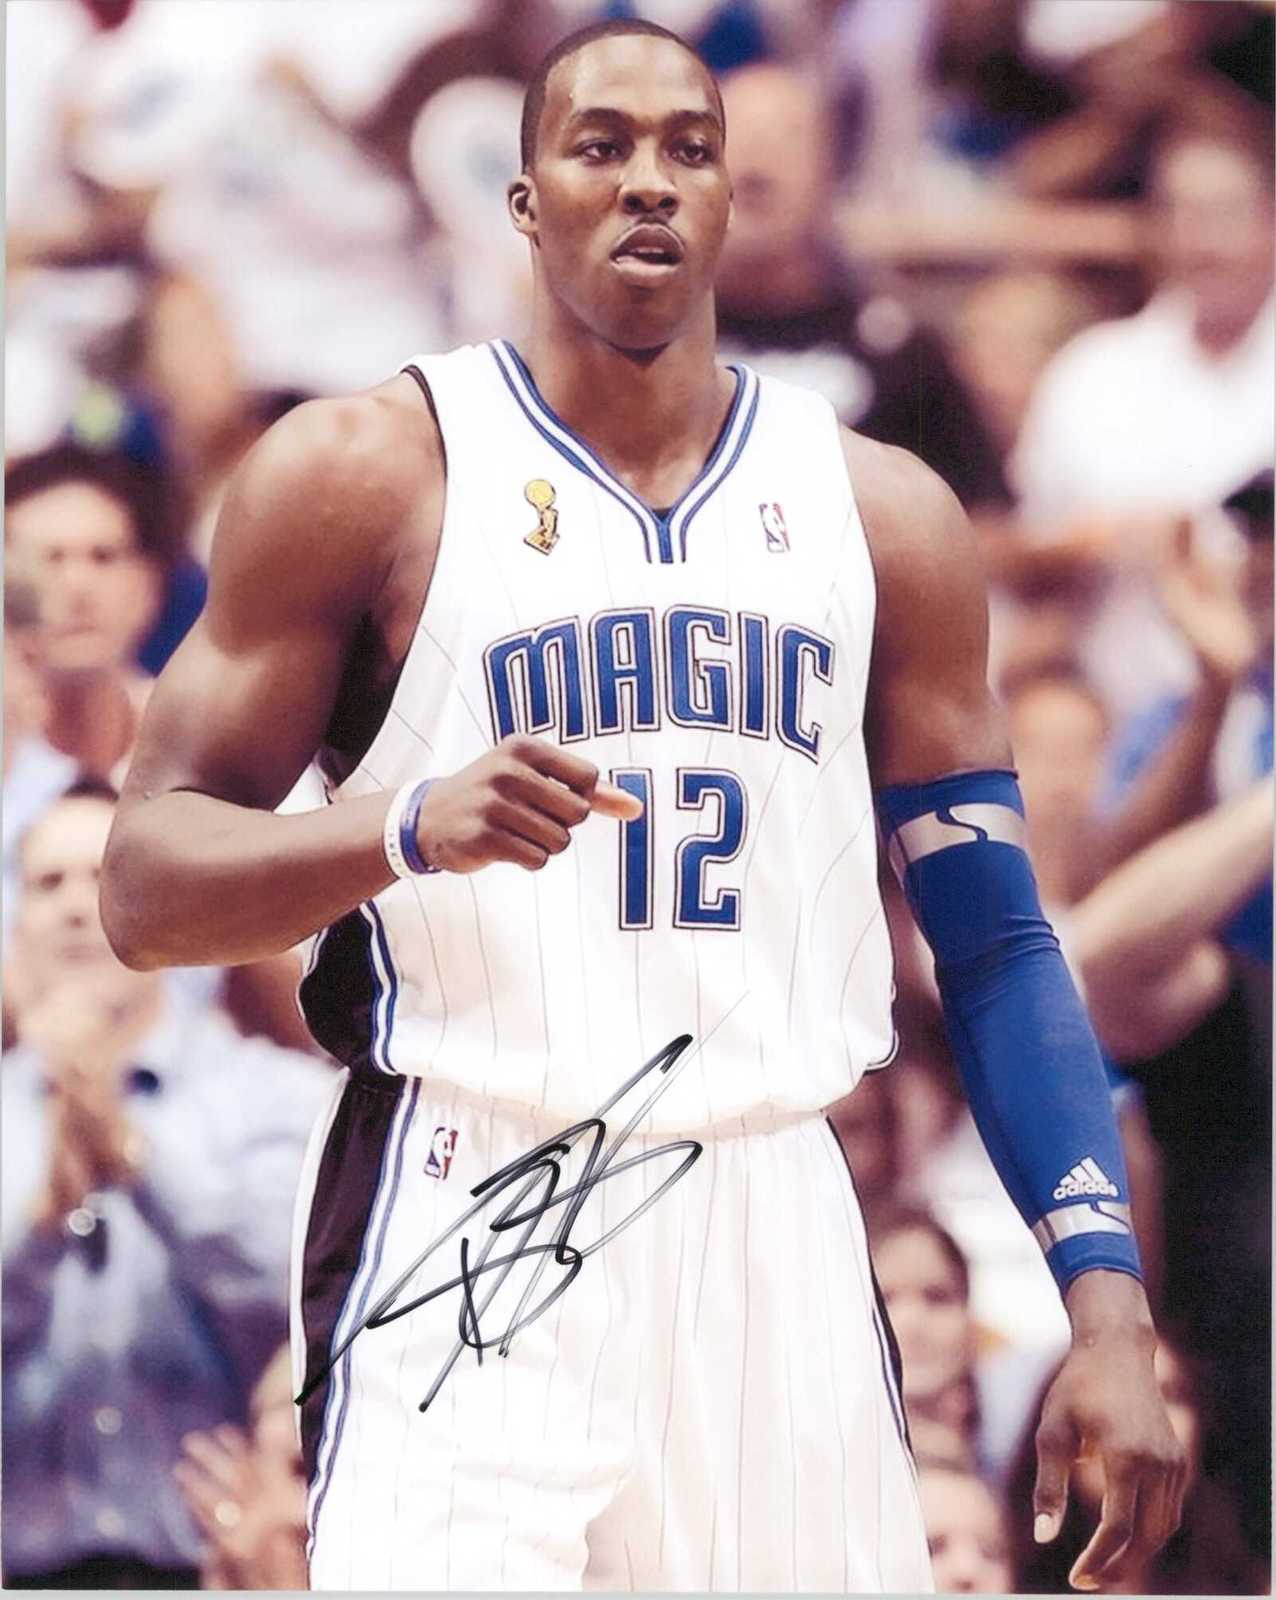 Primary image for Dwight Howard Signed Autographed Glossy 8x10 Photo - Orland Magic